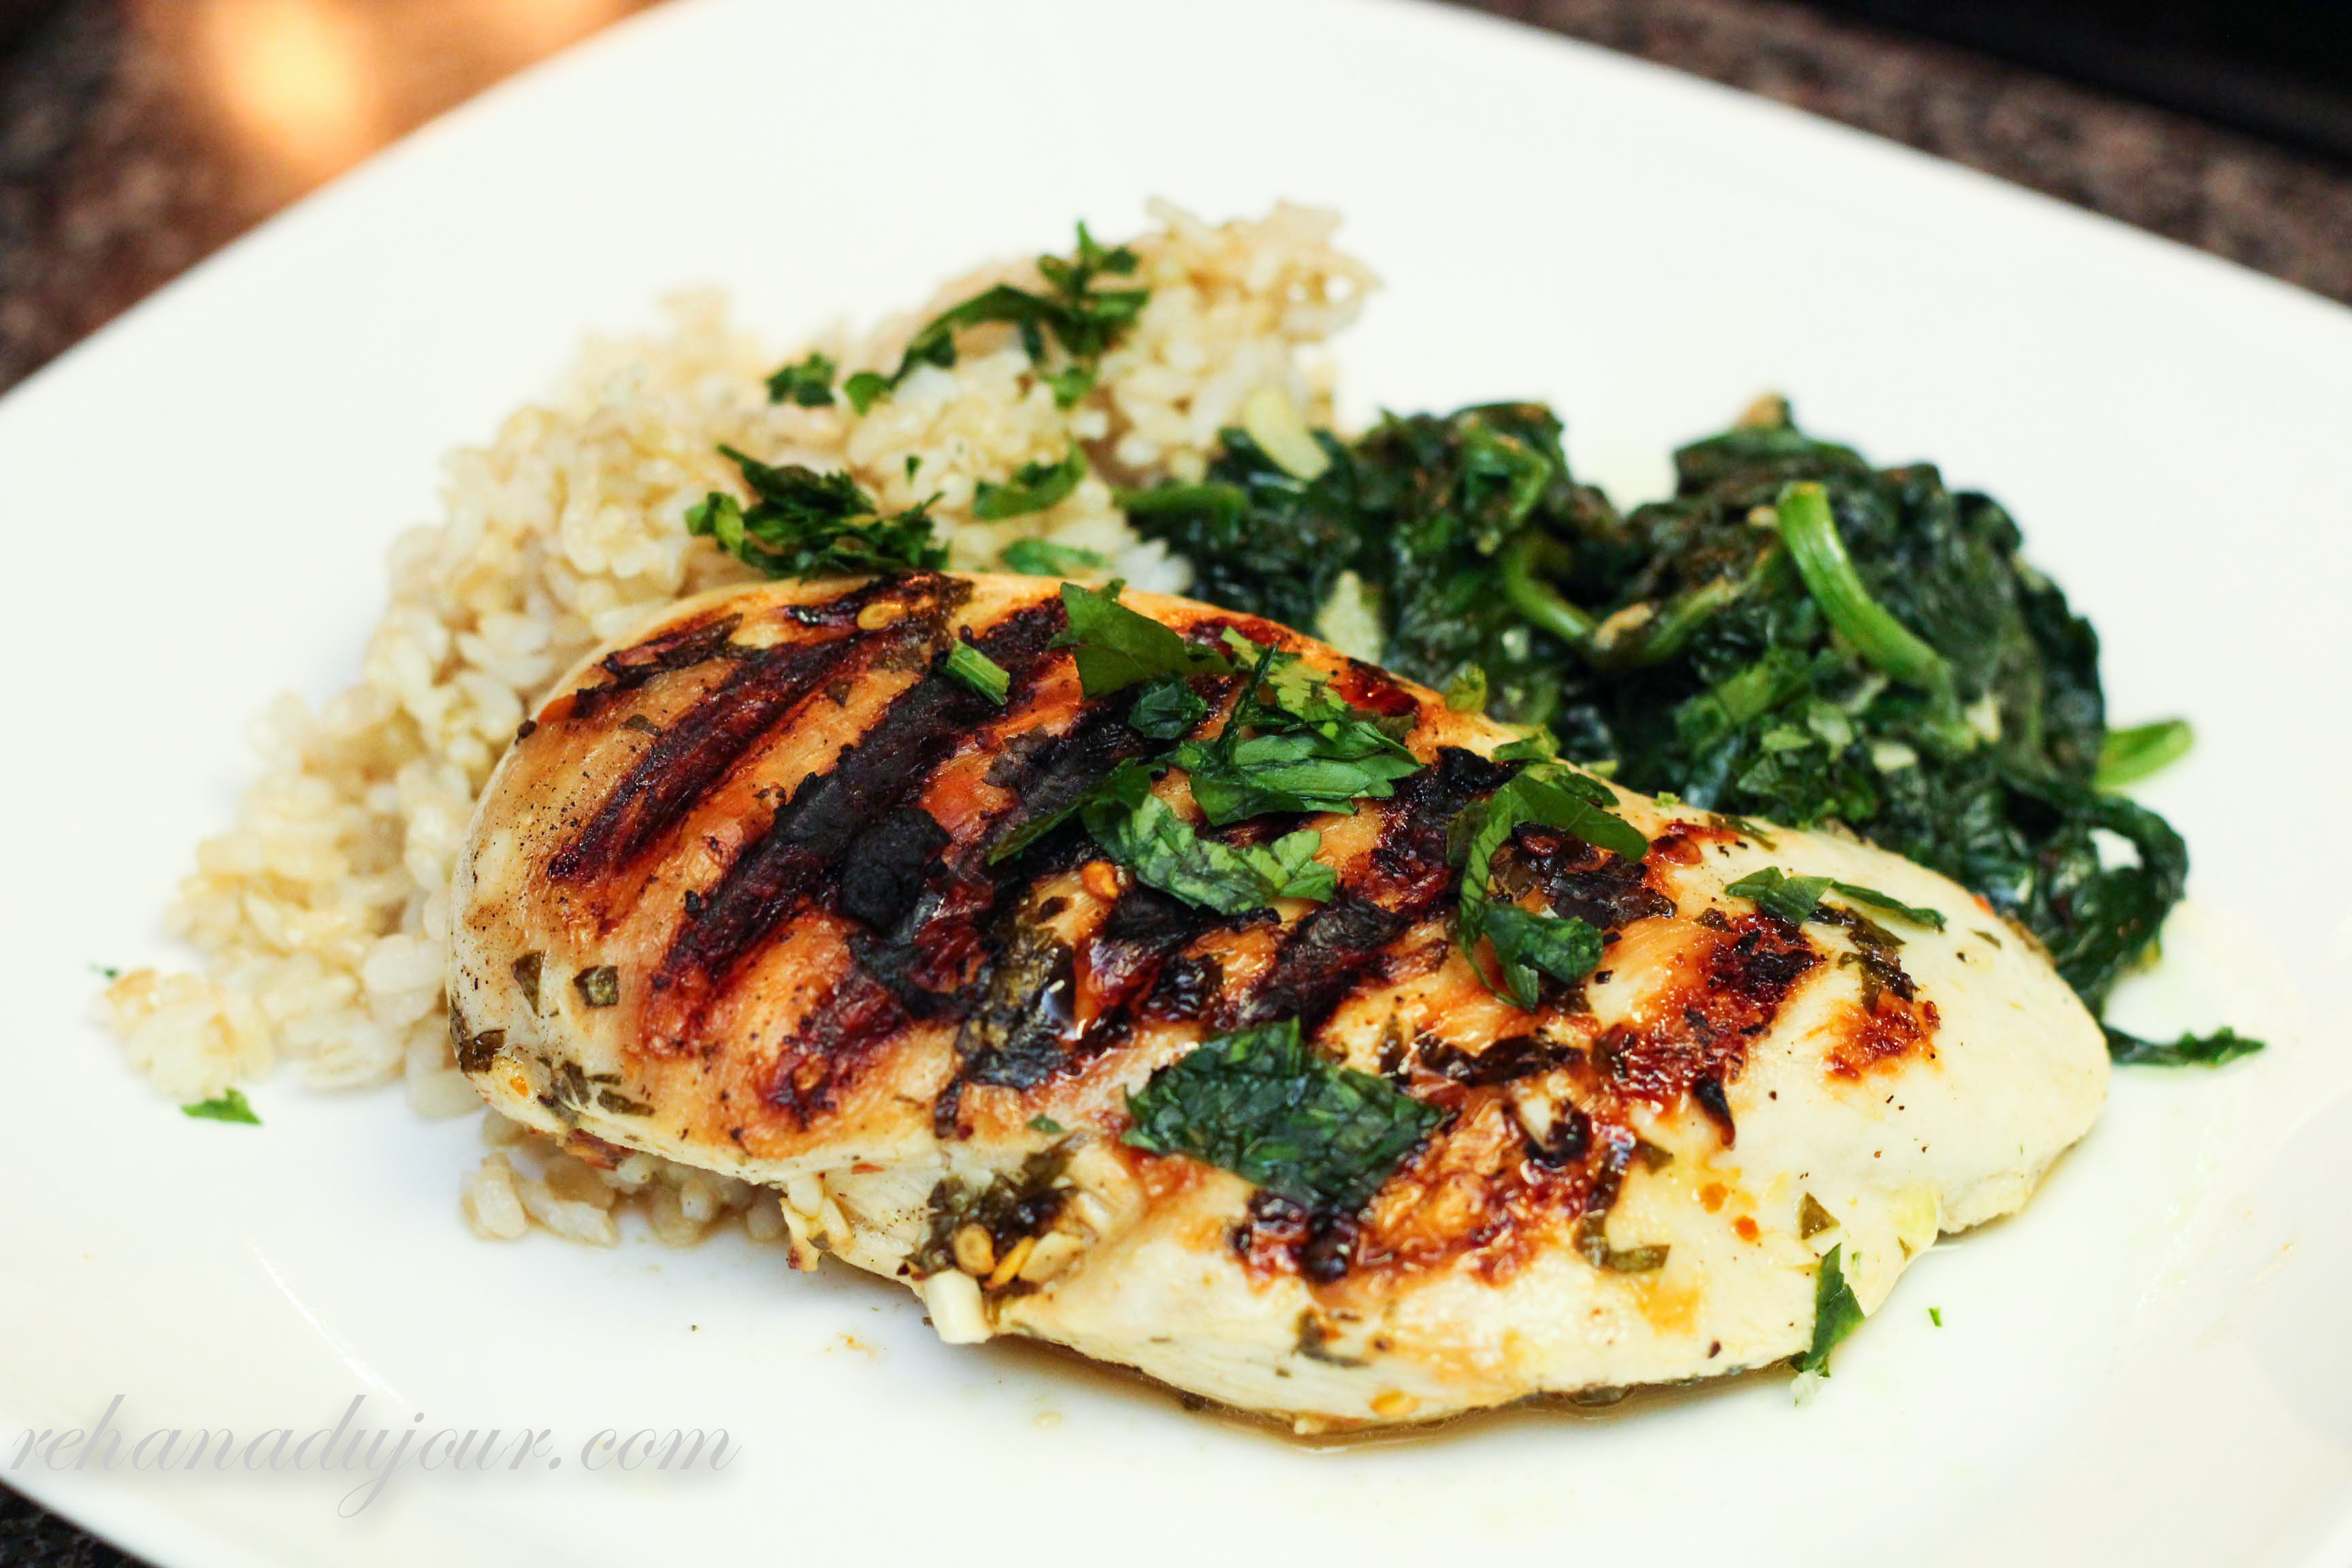 ... grilled chicken. It's spicy, it's citrus-y, it's garlicky, and